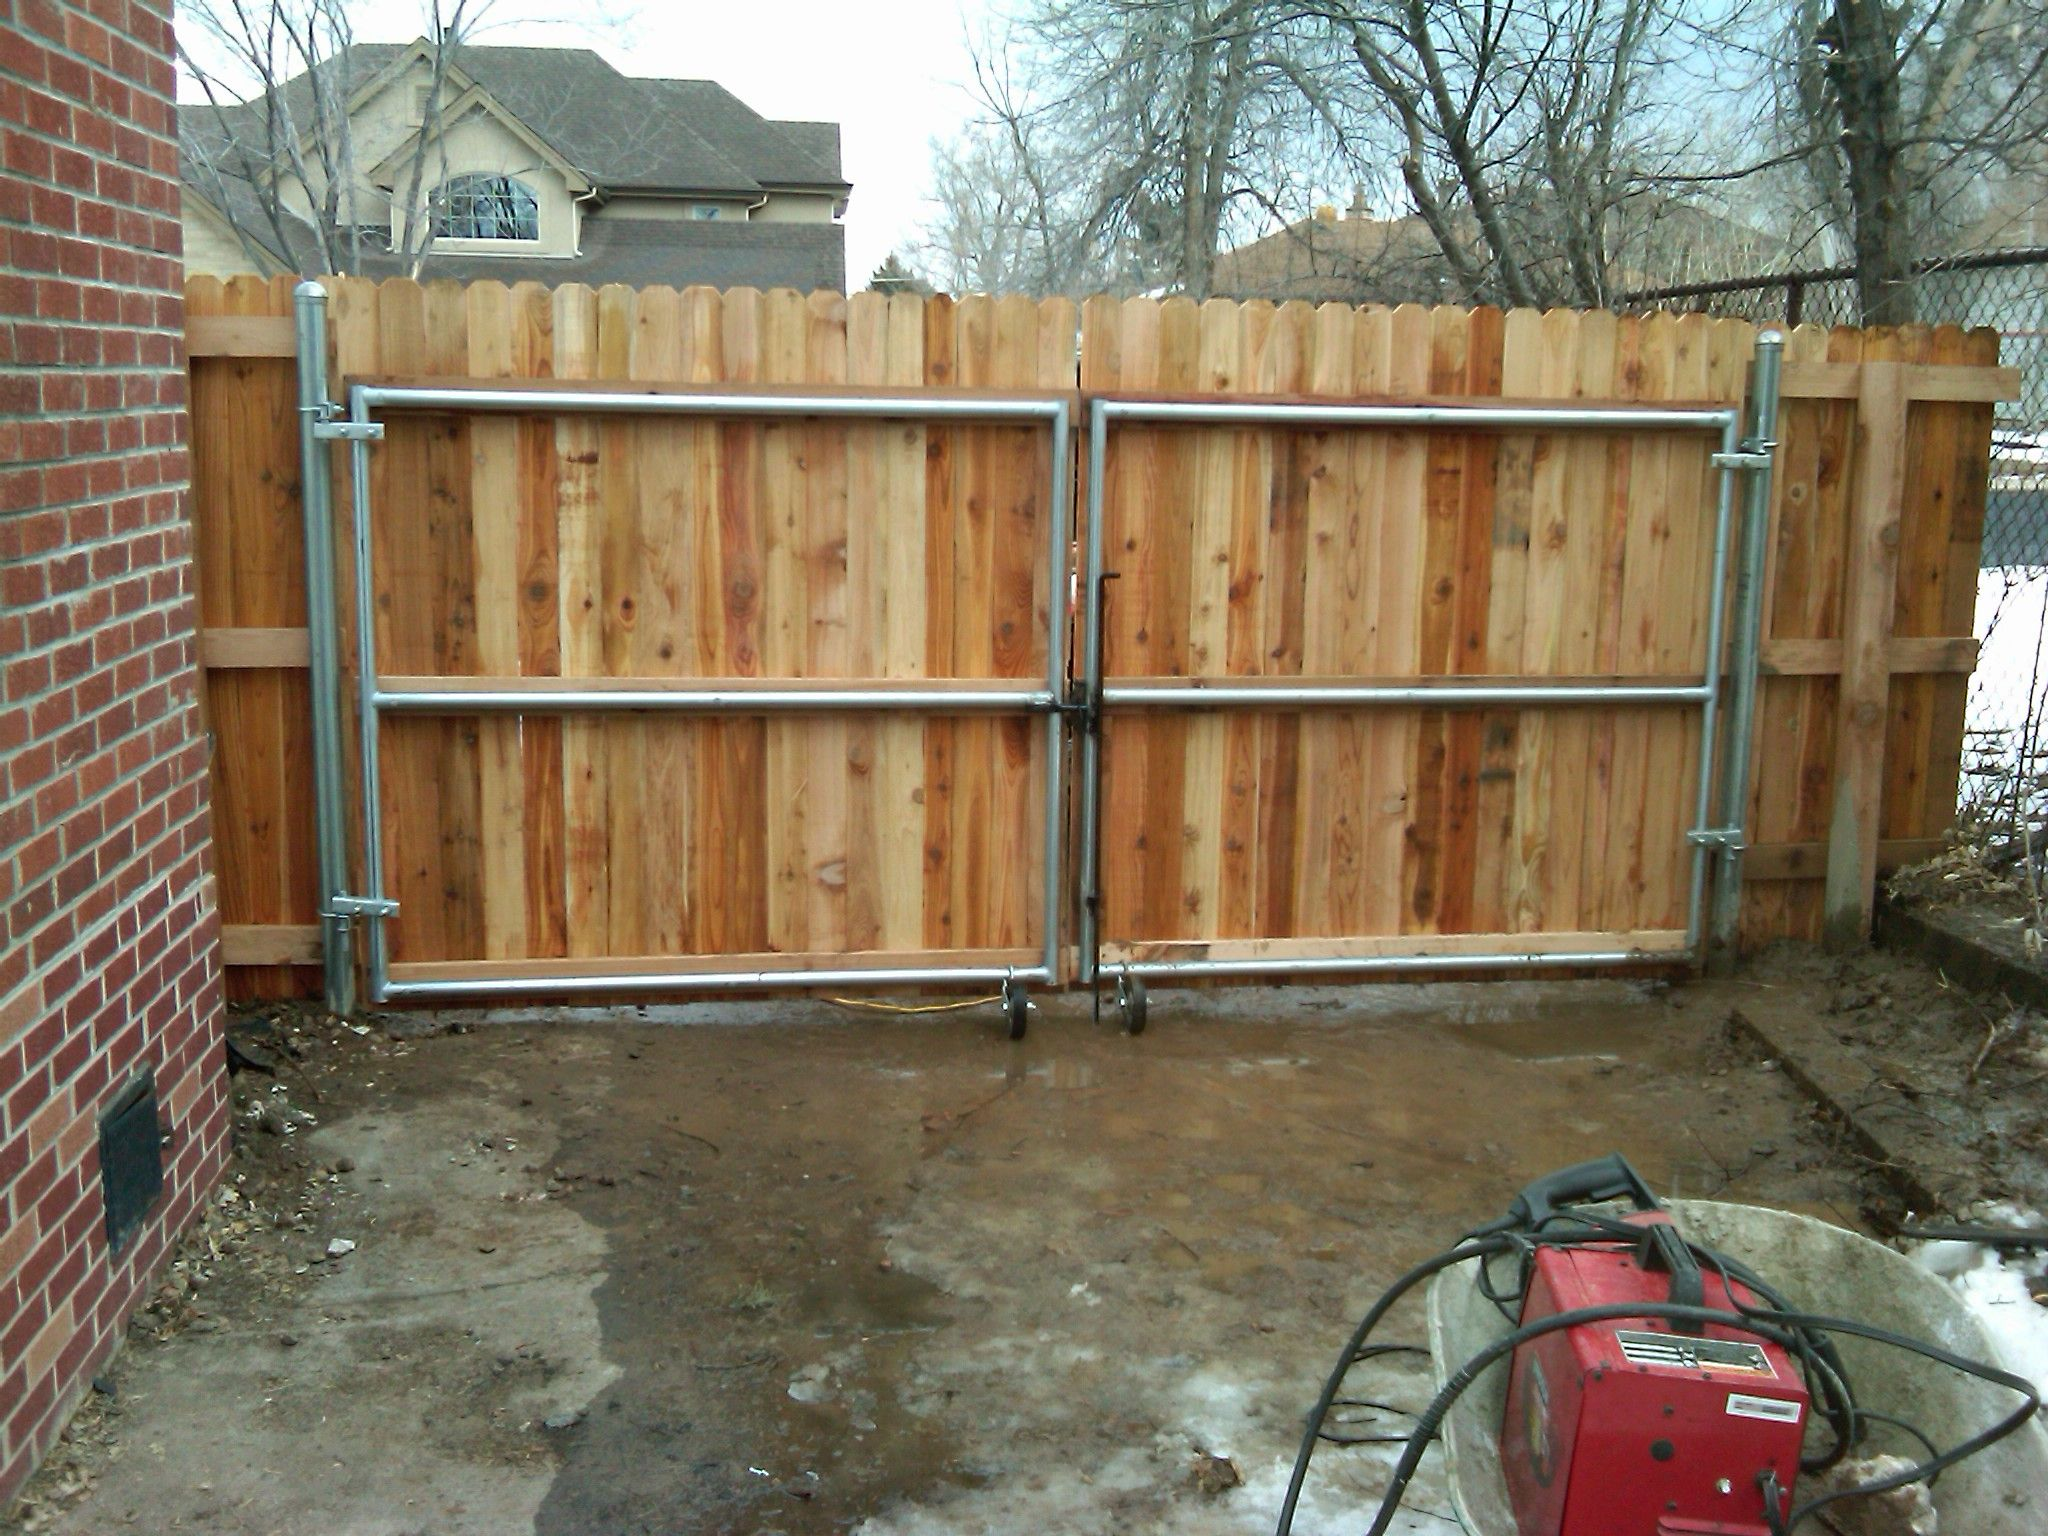 best ideas about wood fence gates wood fences wood fence installation tips attaching the gate a wooden fence gate makes a very beautiful accent to the house and lawn they